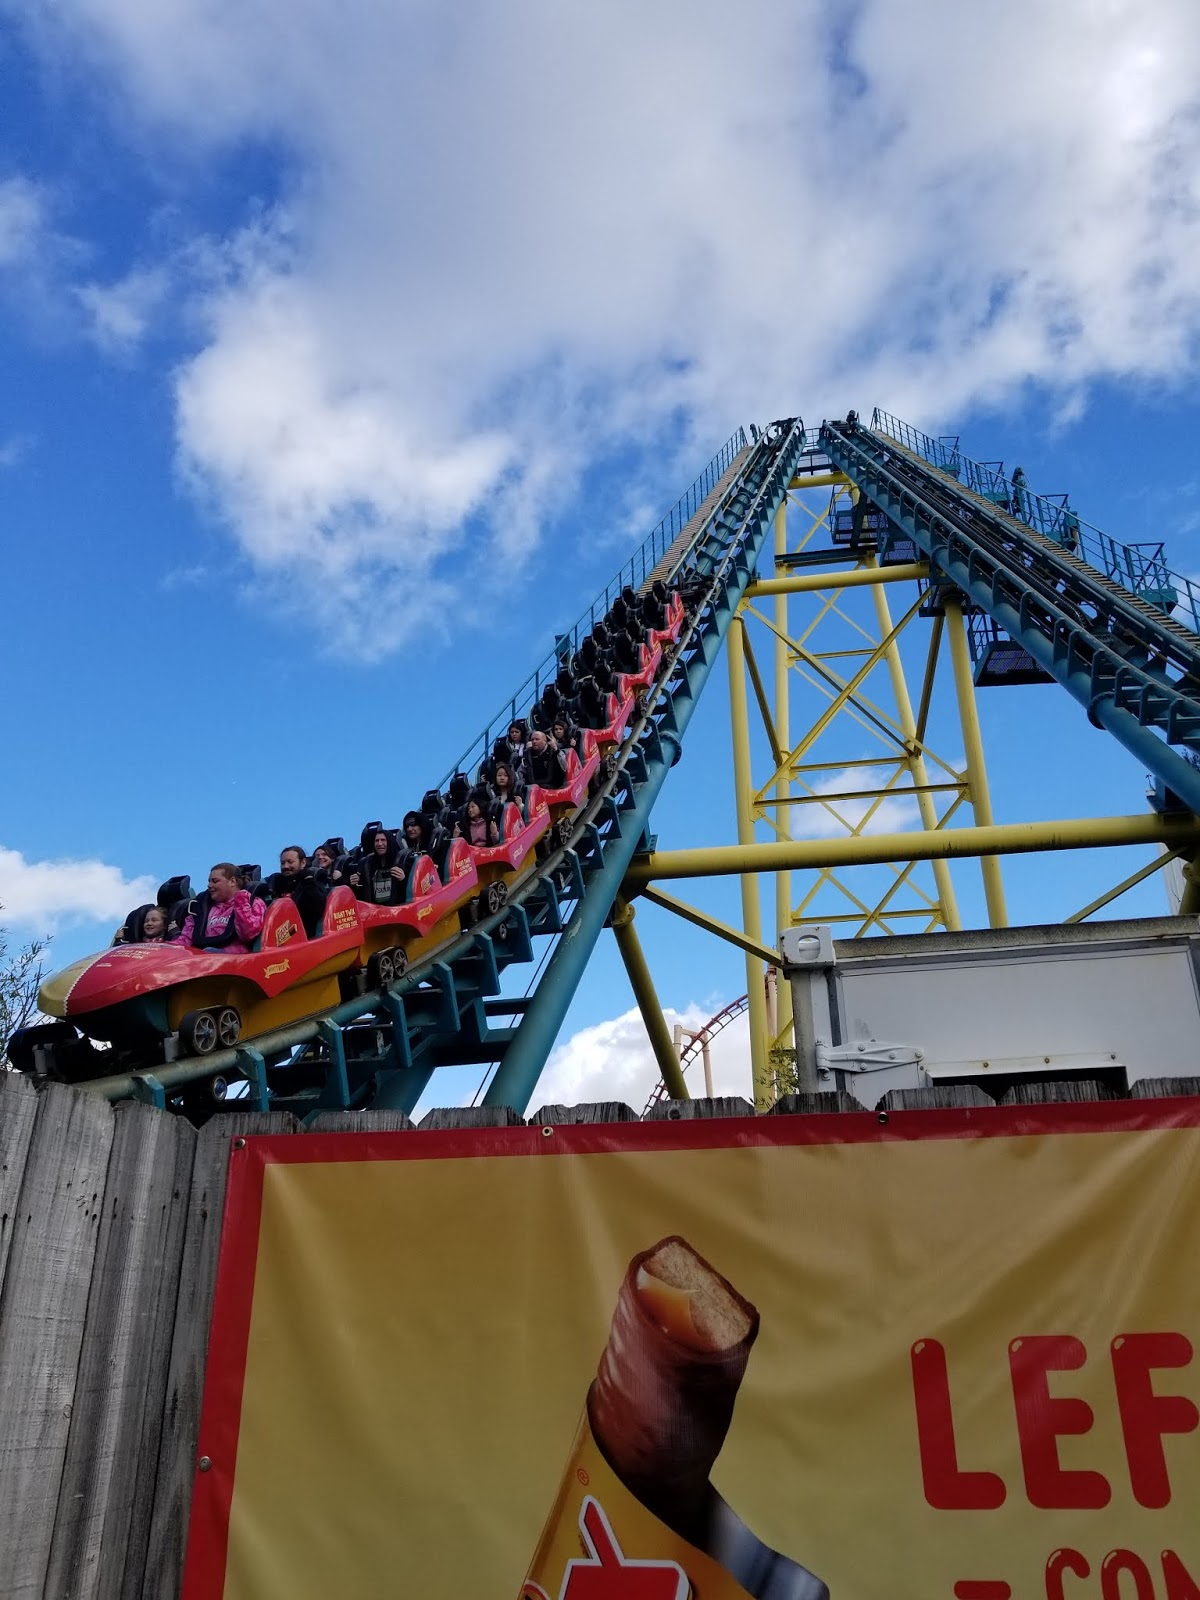 Thrills by the Bay: Six Flags Discovery Kingdom Trip Report